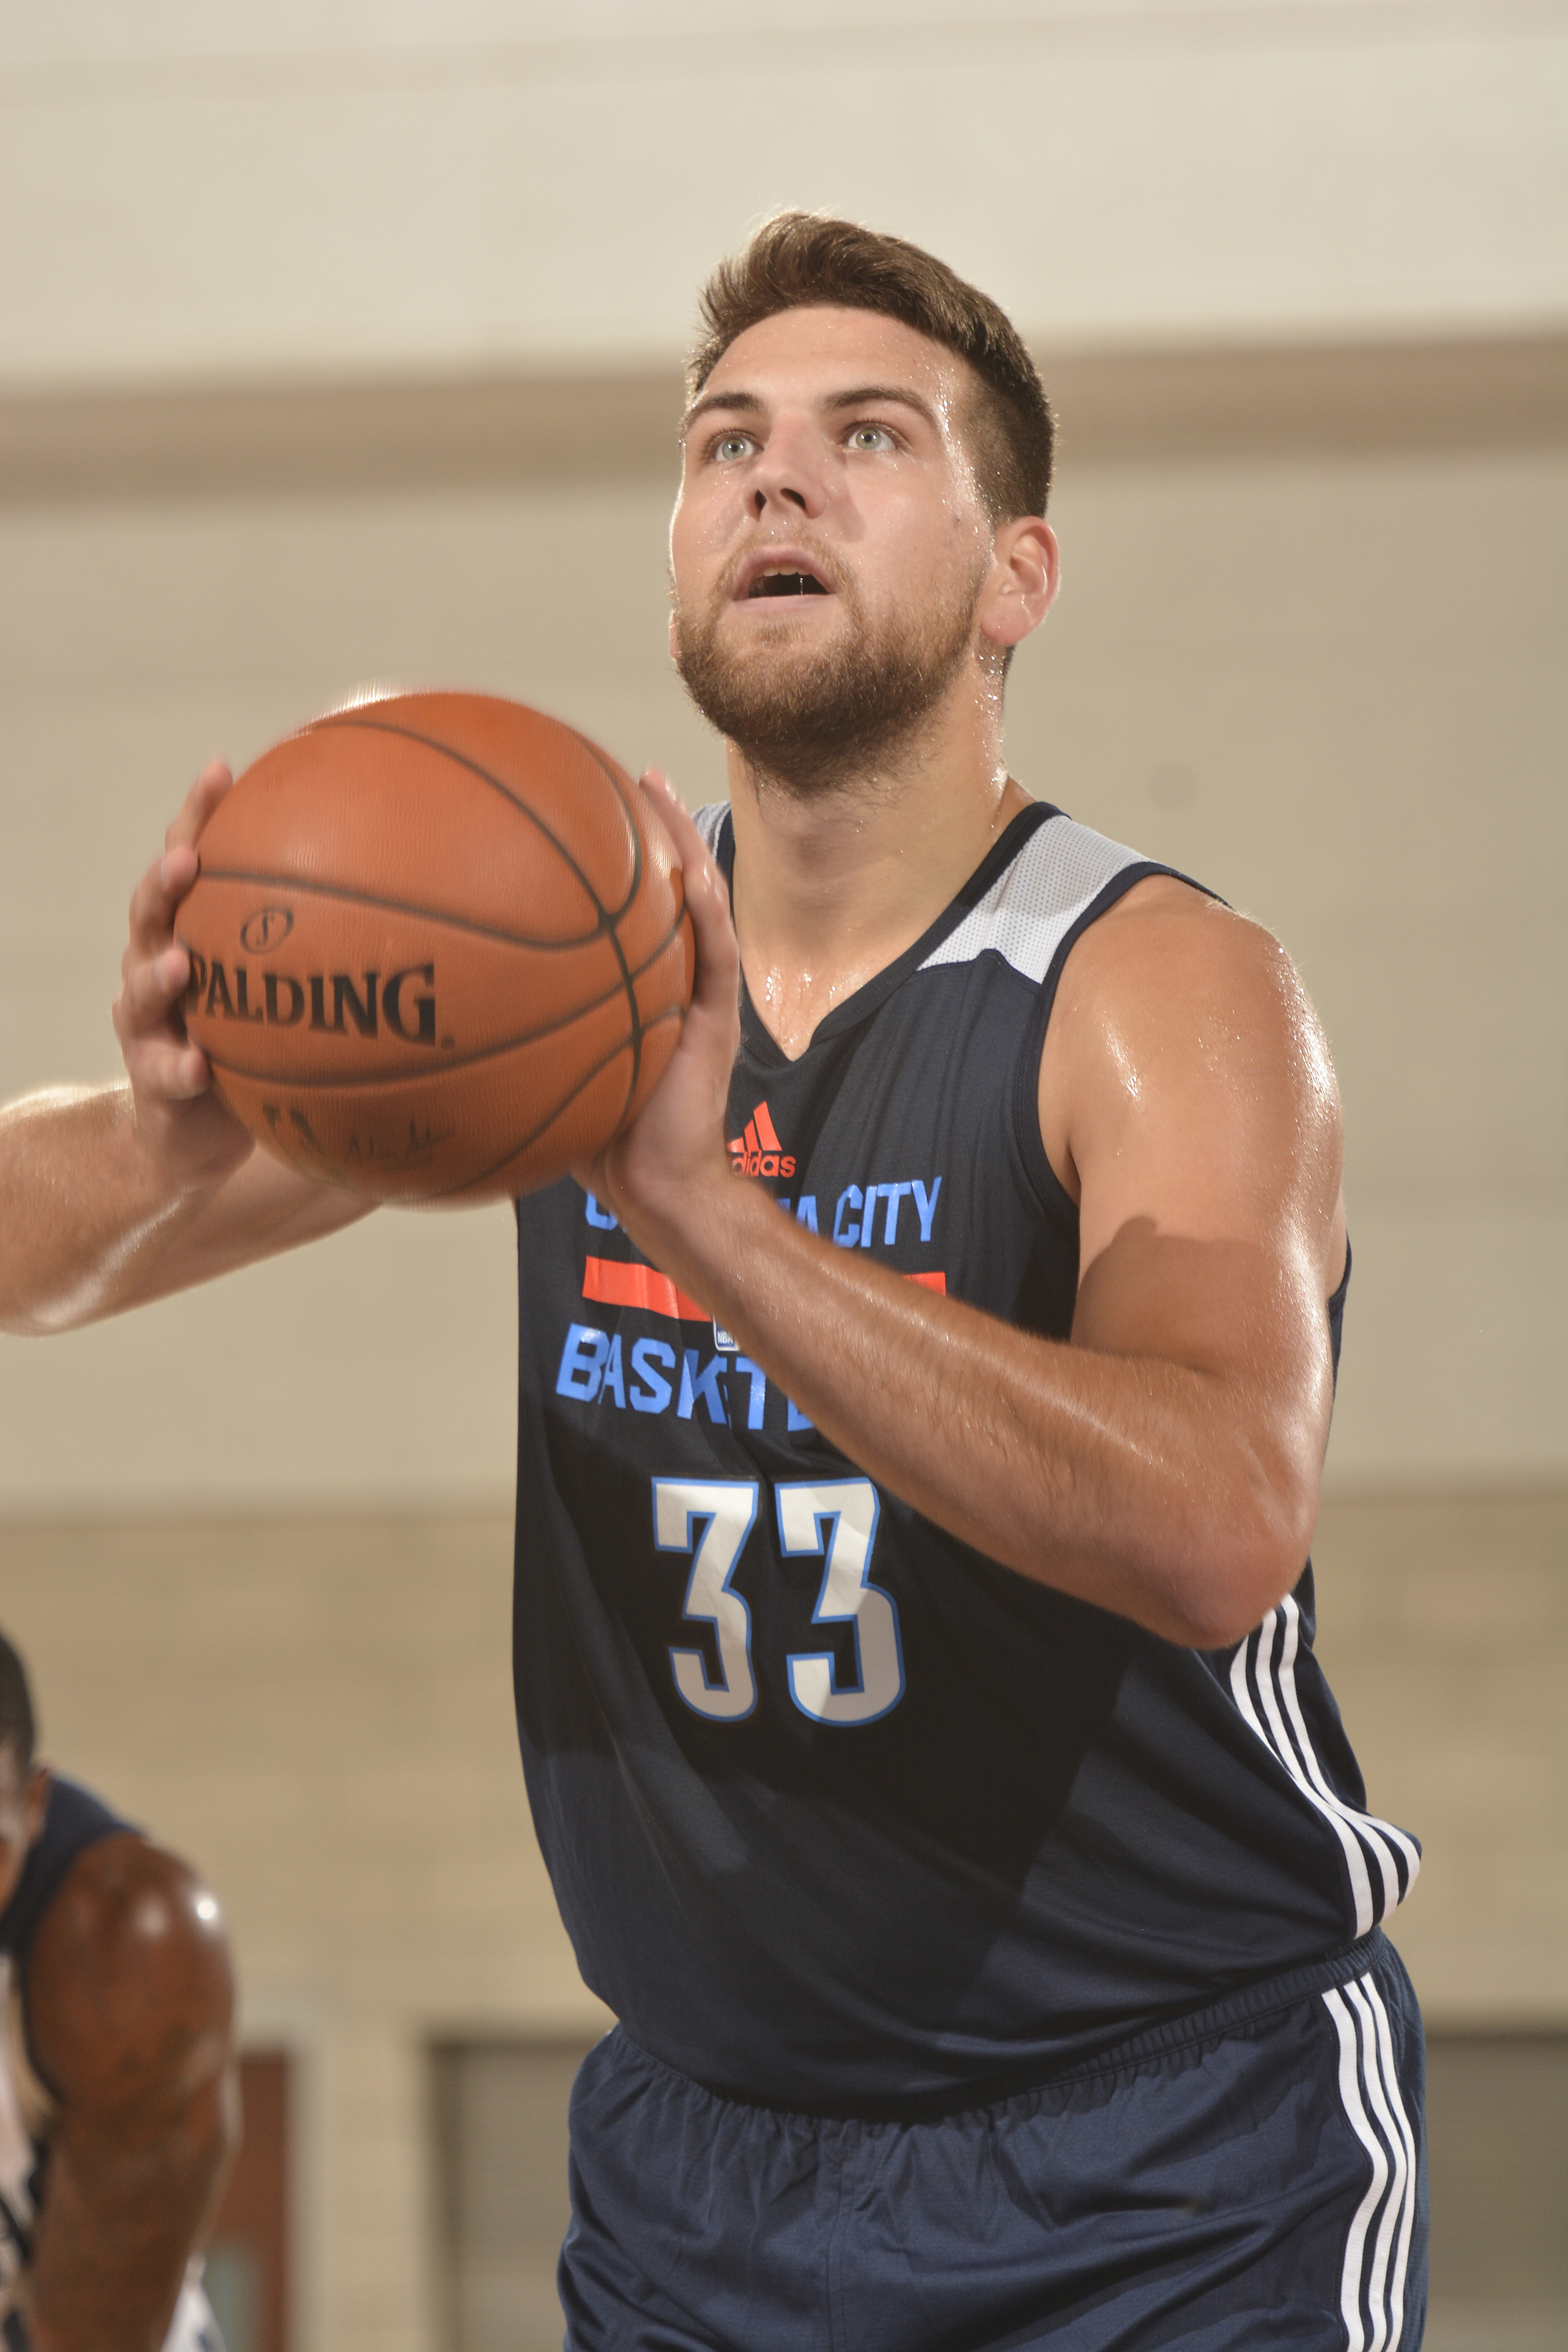 ORLANDO, FL - JULY 2: Mitch McGary #33 of the Oklahoma City Thunder shoots against the Dallas Mavericks during the 2016 Southwest Airlines Orlando Pro Summer League on July 2, 2016 at Amway Center in Orlando, Florida. (Photo by Fernando Medina/NBAE via Ge